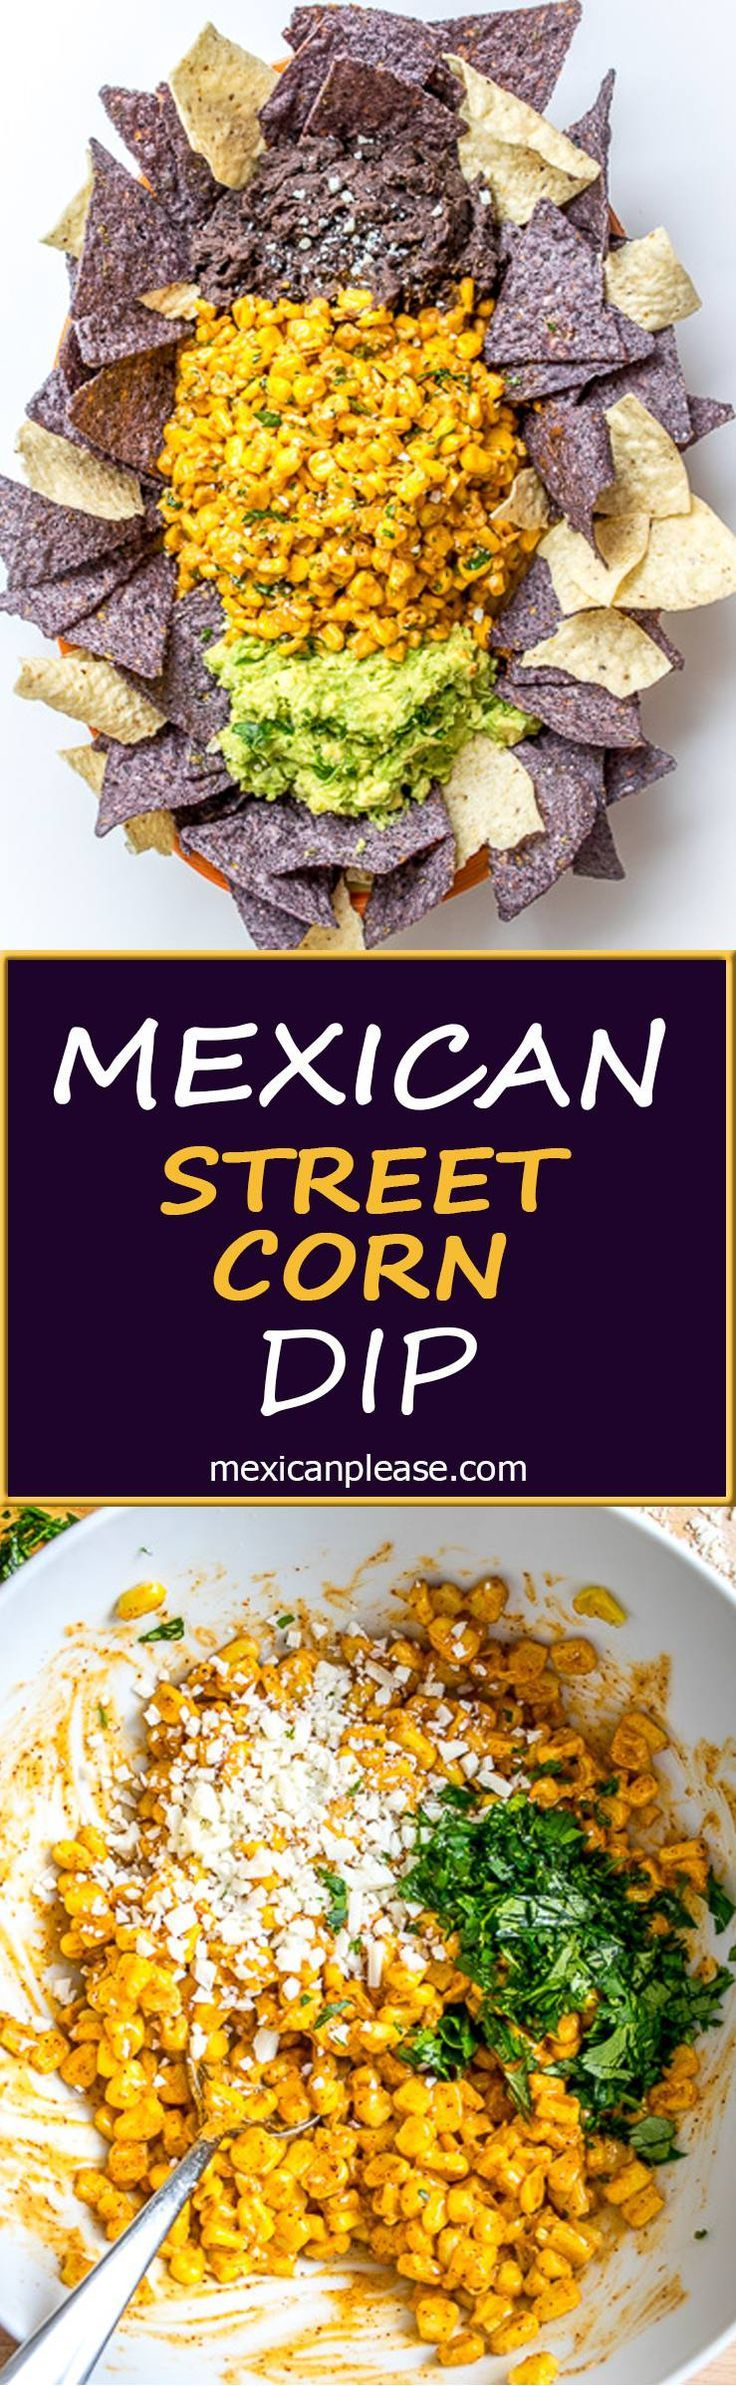 Mexican Street Corn is typically slathered in a creamy Chili-Lime sauce.  This recipe adds beans and guacamole to the mix and the result is a meal worthy dip that is delicious!  http://mexicanplease.com